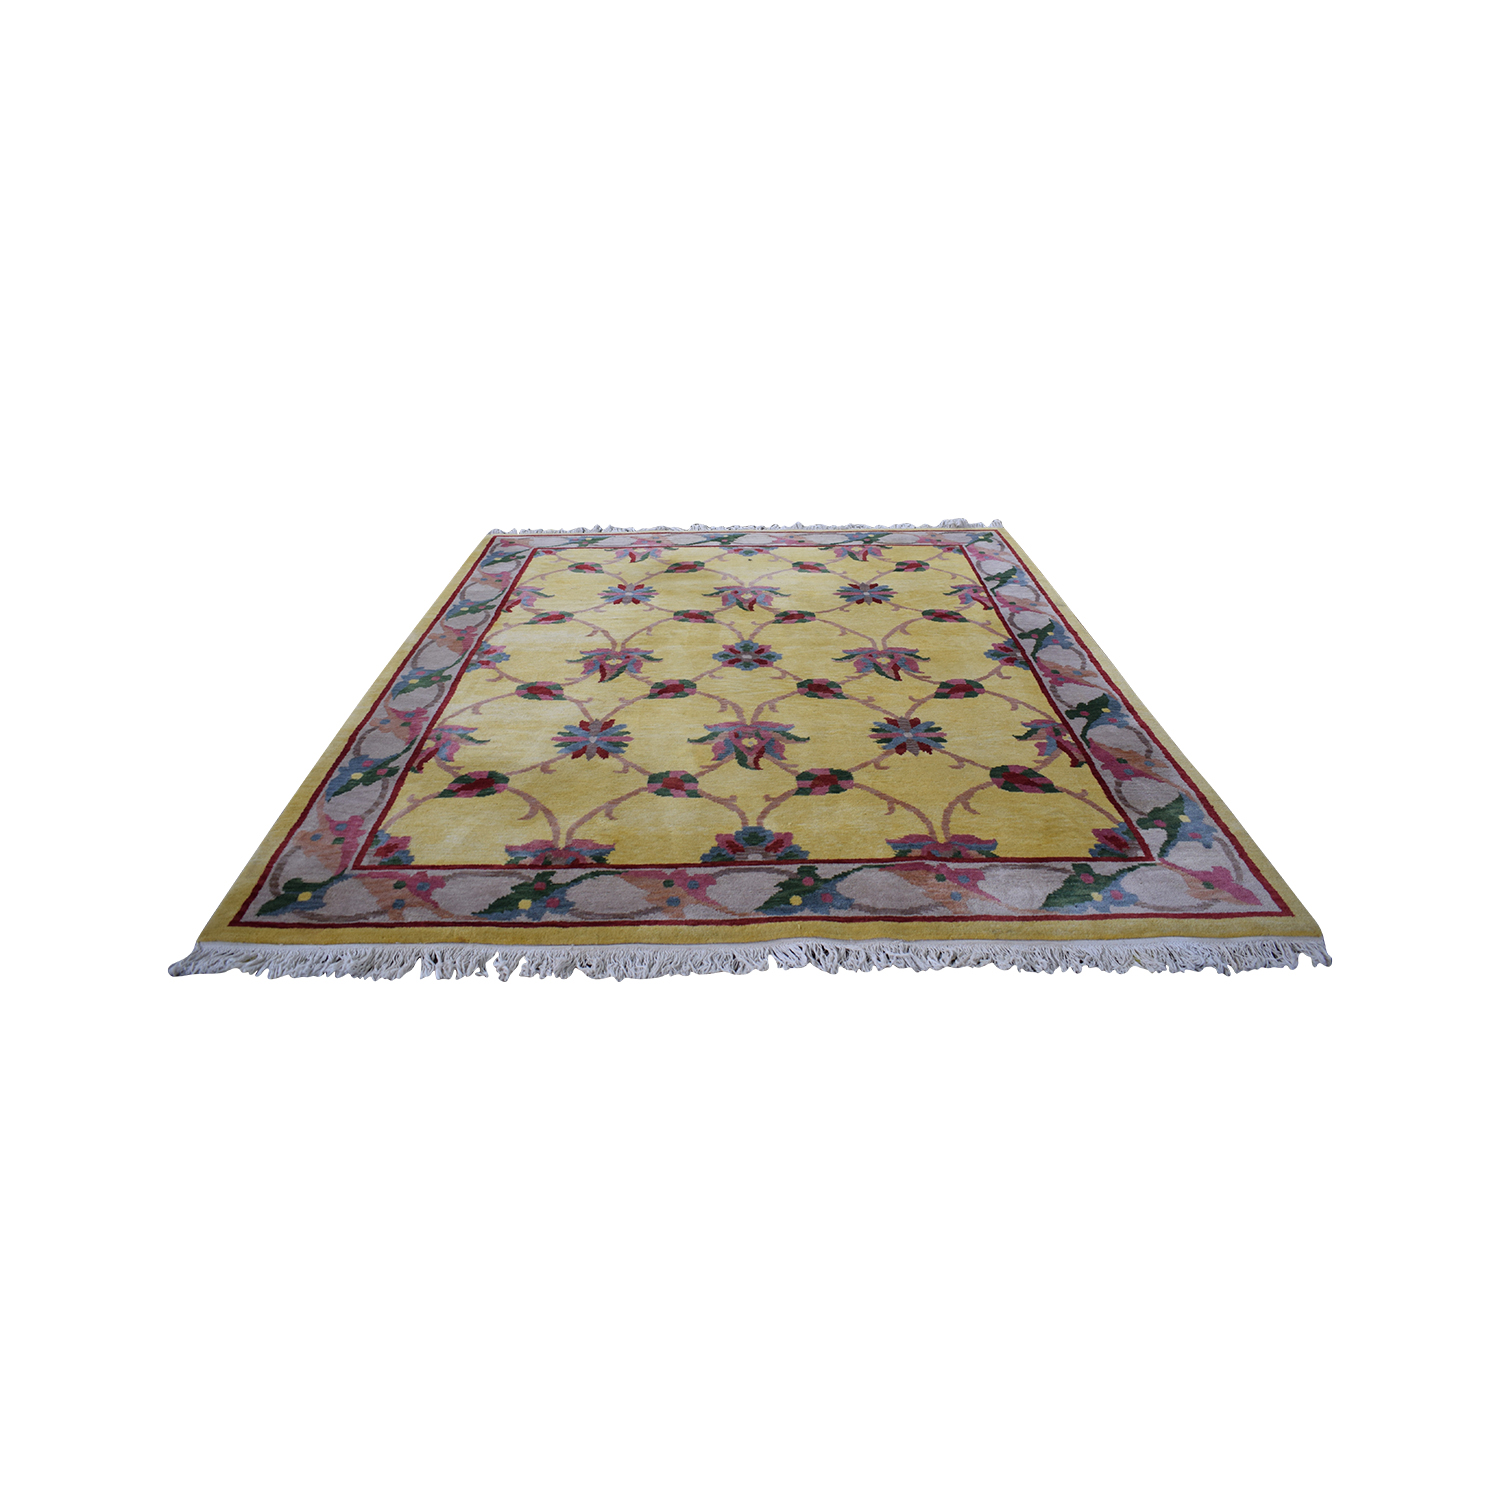 buy ABC Carpet & Home ABC Carpet & Home Oriental Wool Rug online